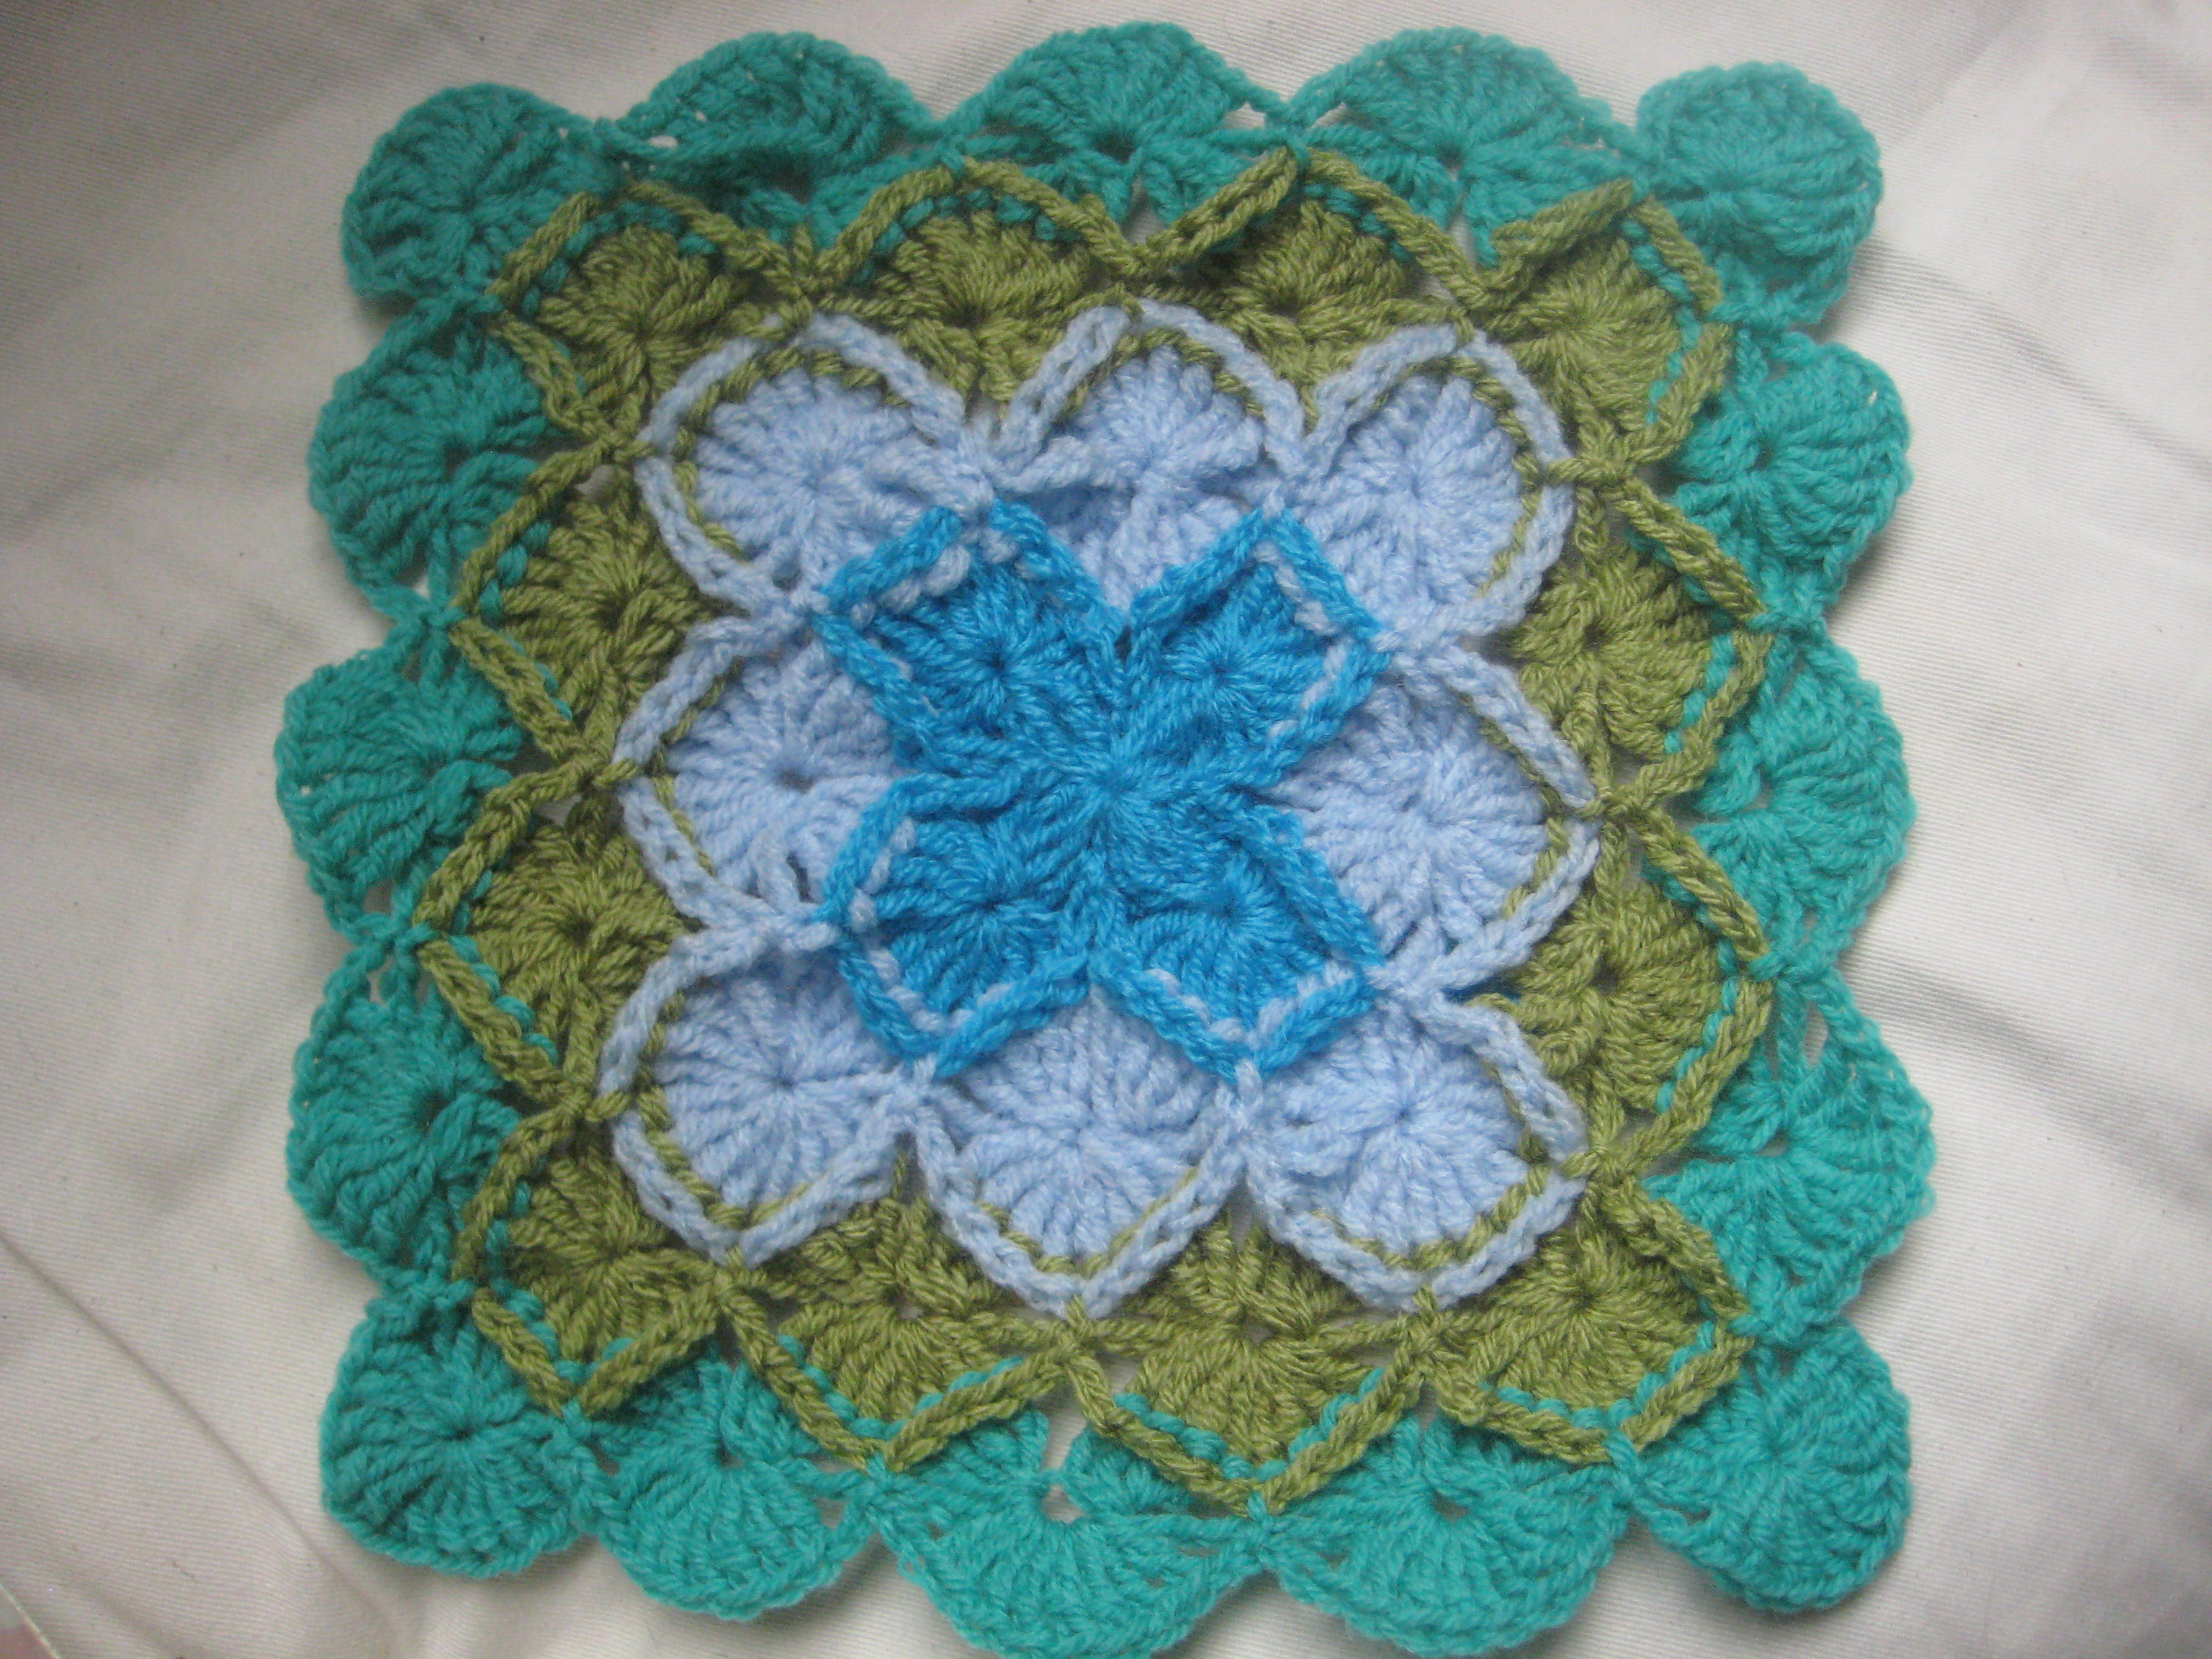 014 Bavarian crochet stitch cushion